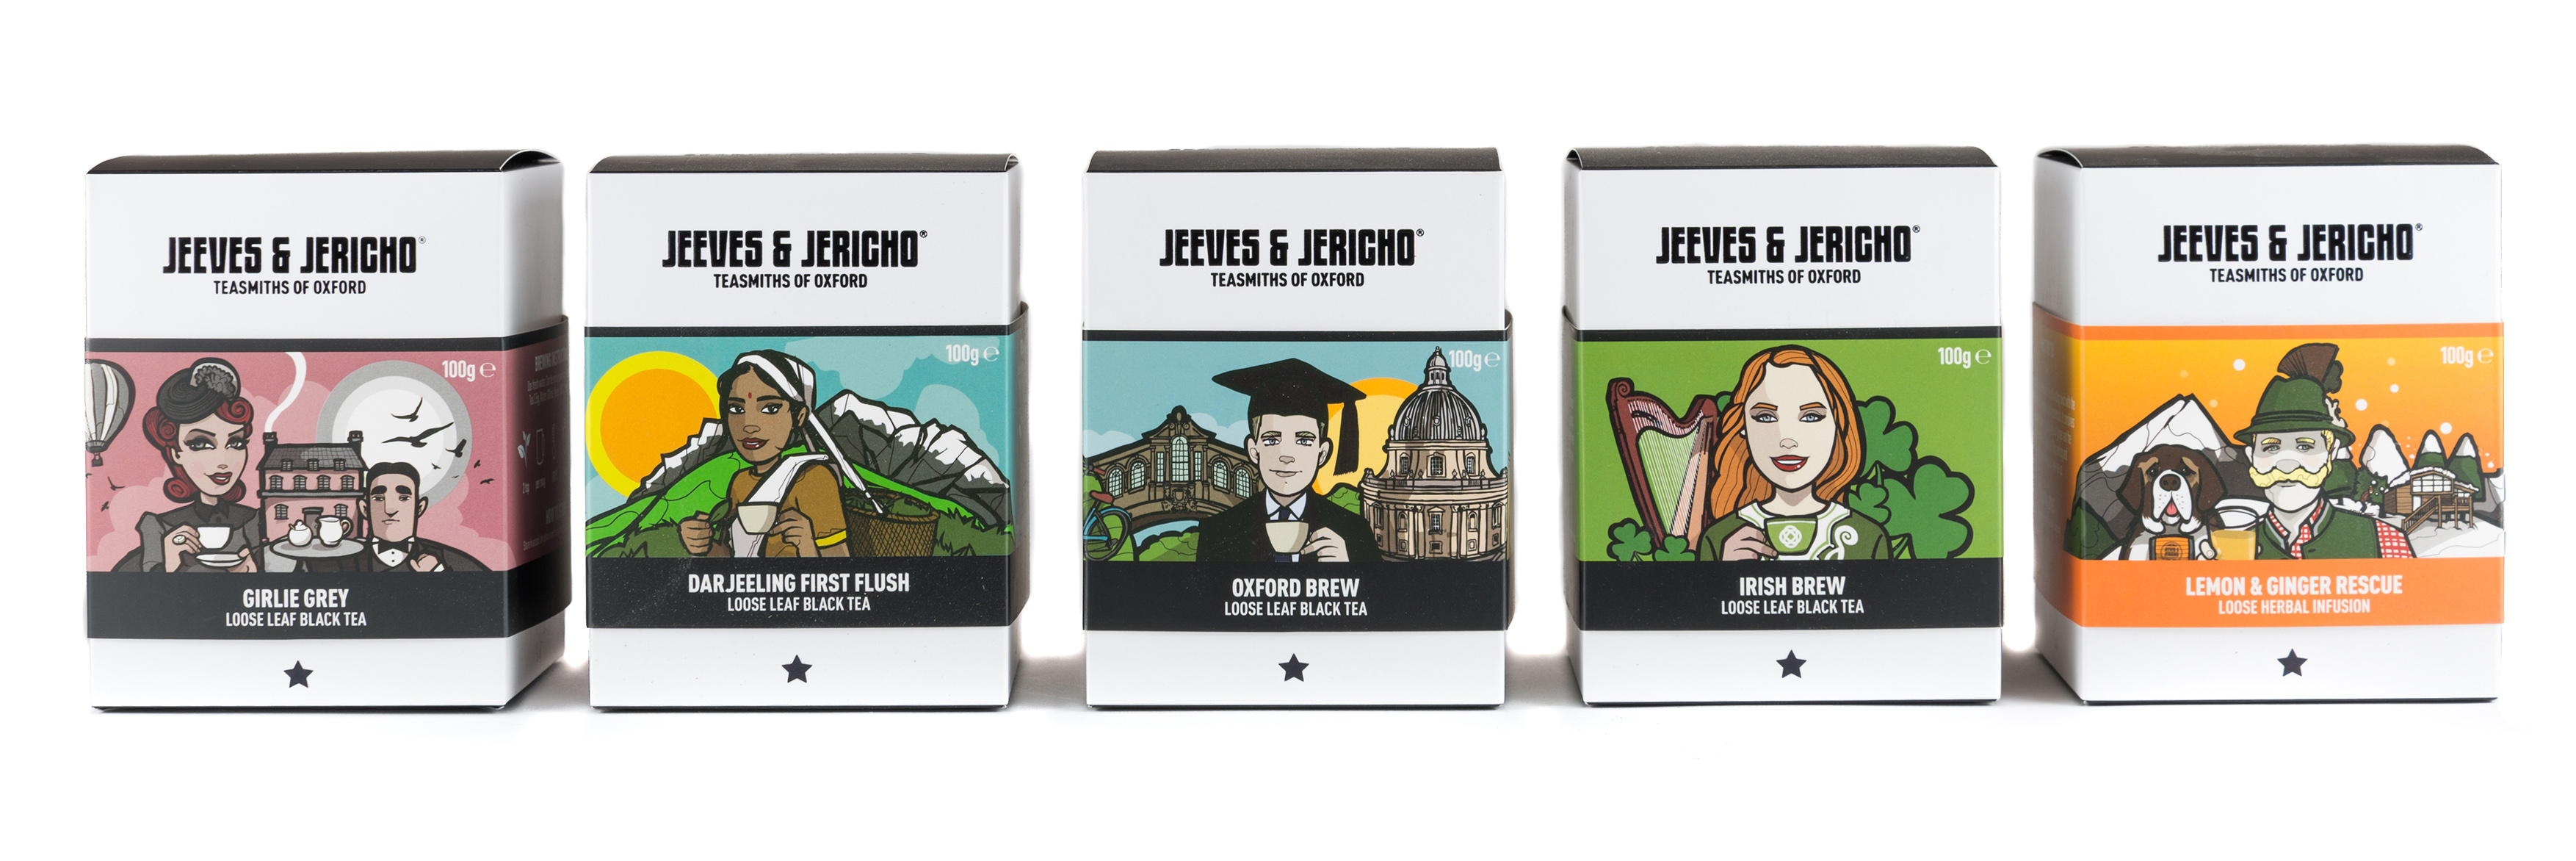 Jeeves and Jericho Tea Packaging Group